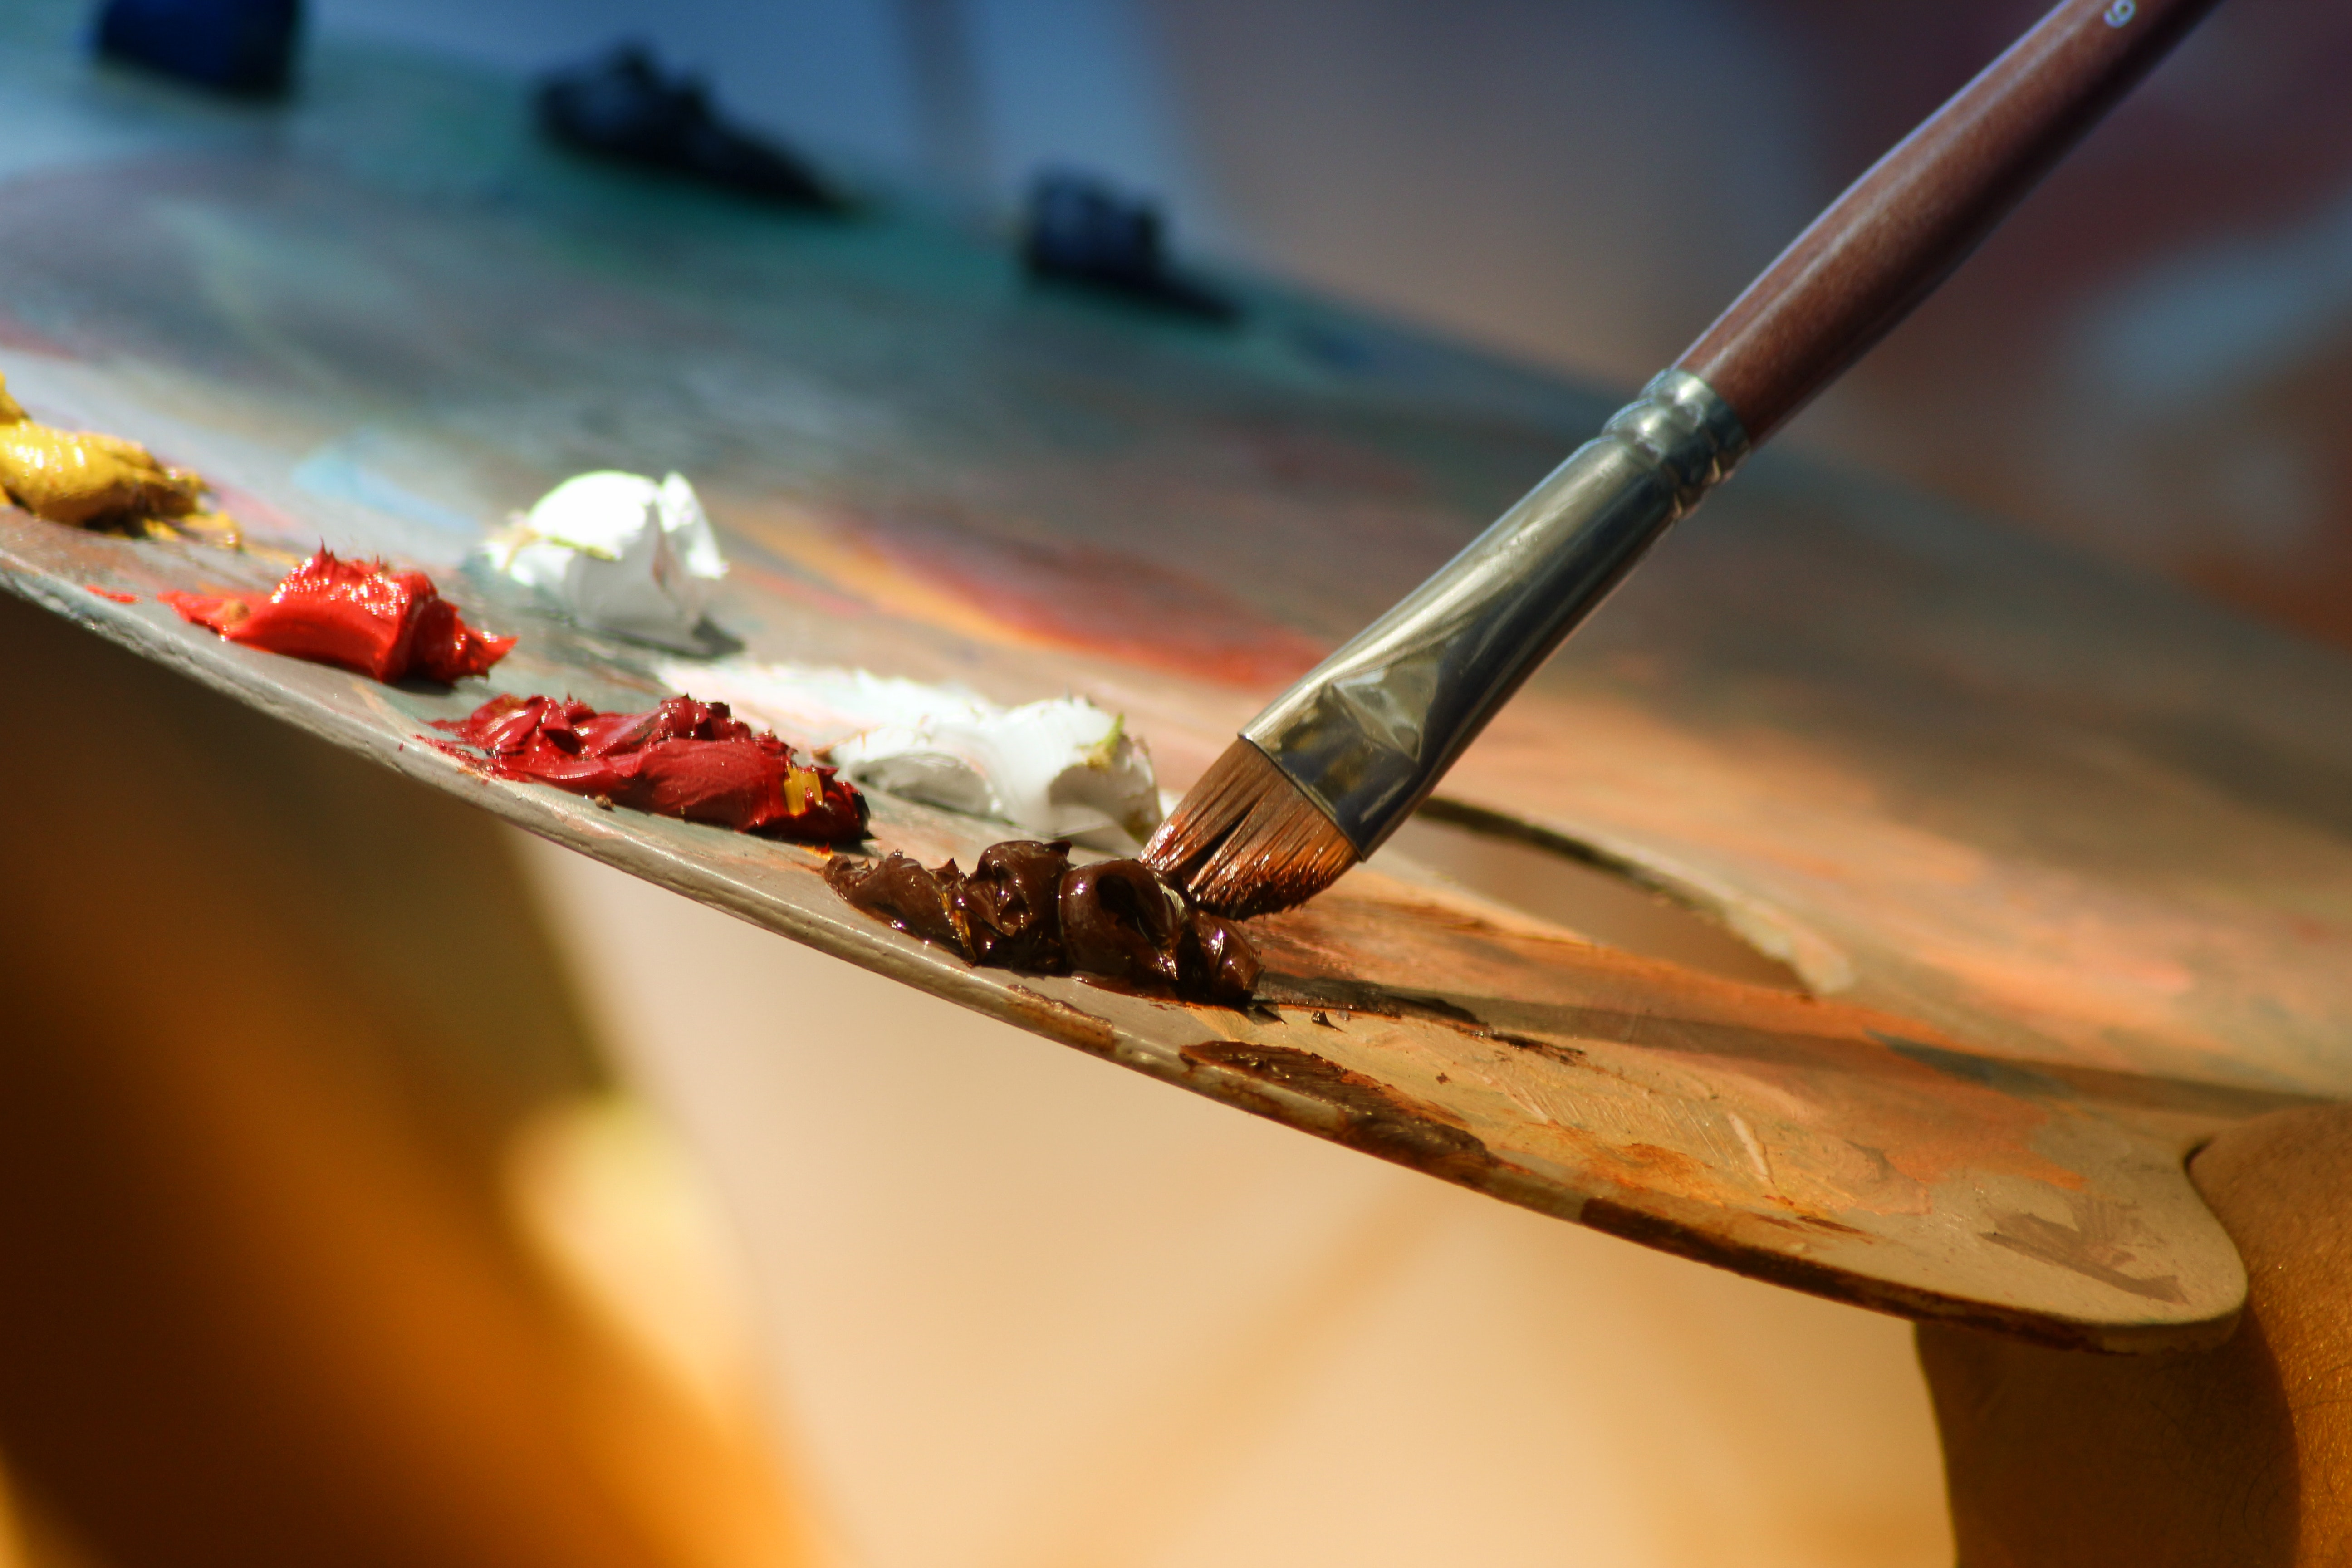 Keys to a Successful Art Career From Some of the Greats